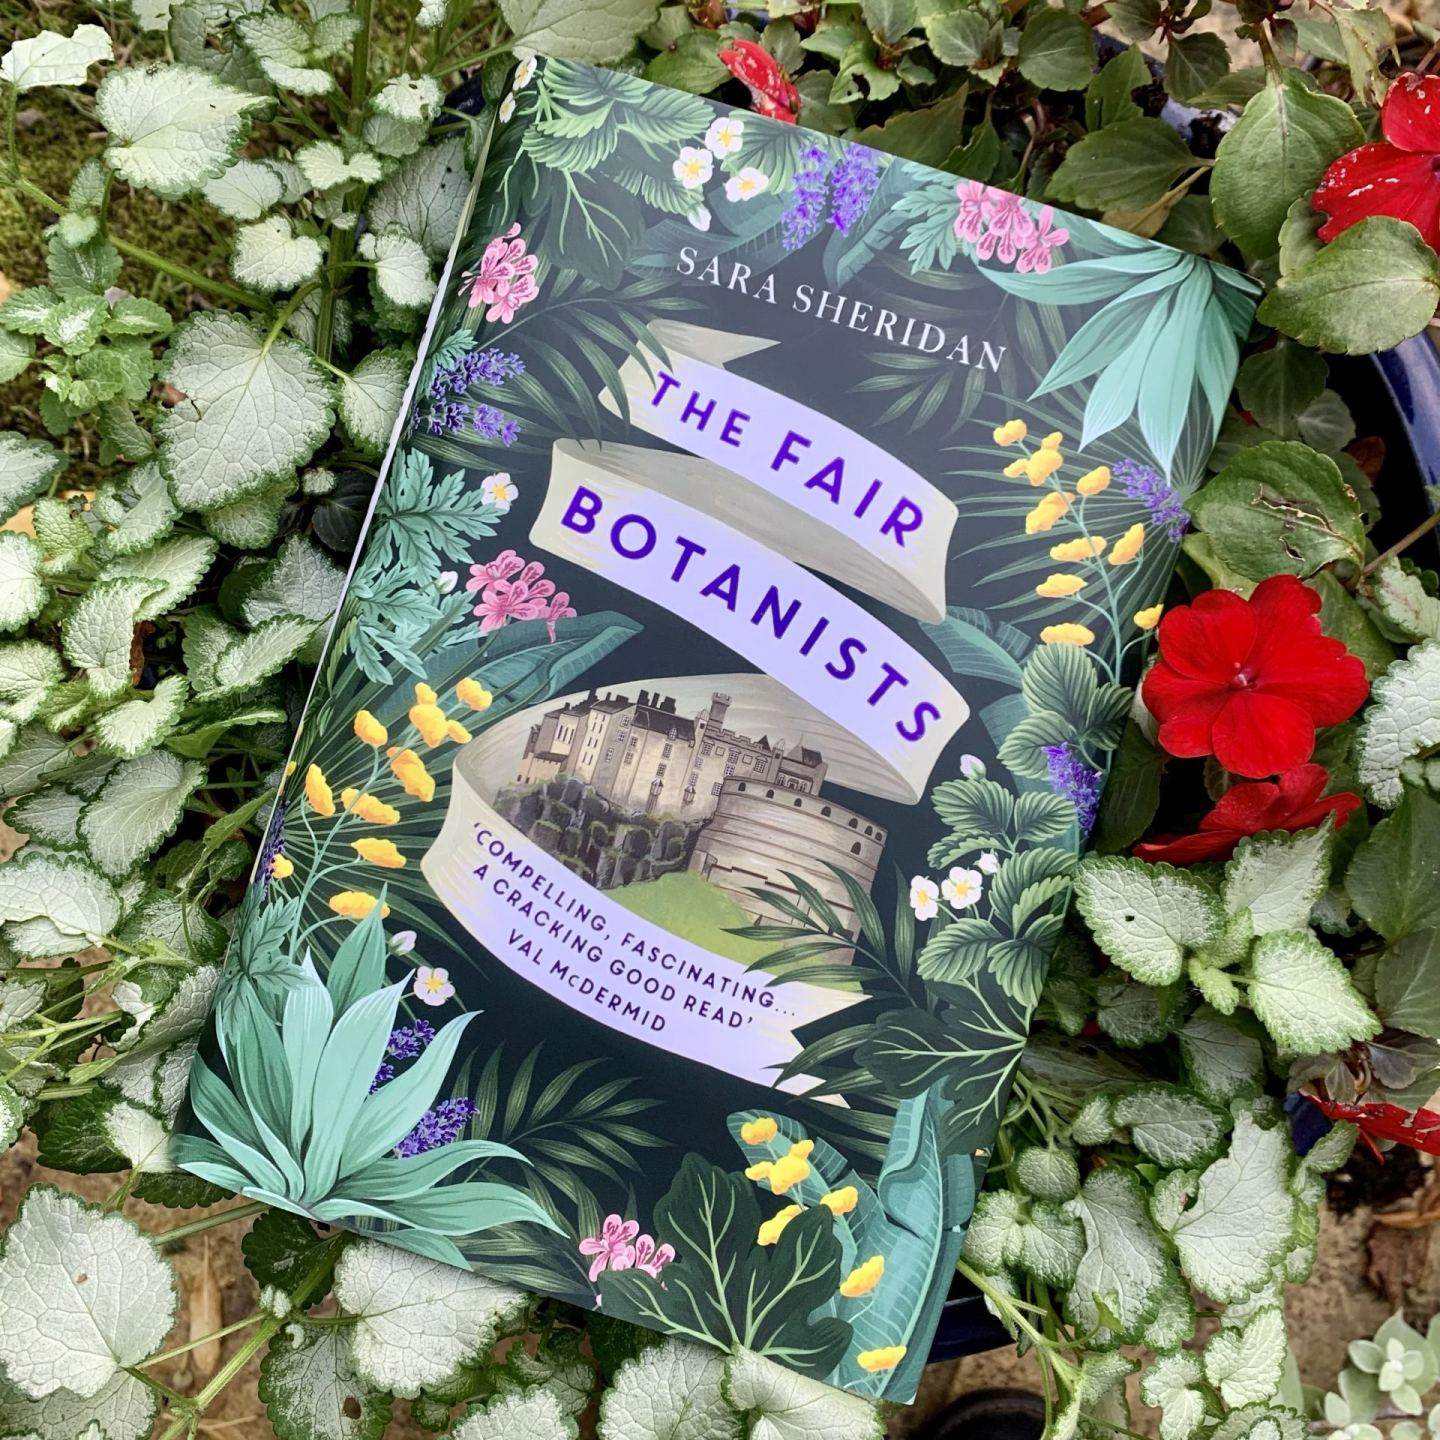 The Fair Botanists; immersive, rich and evocative